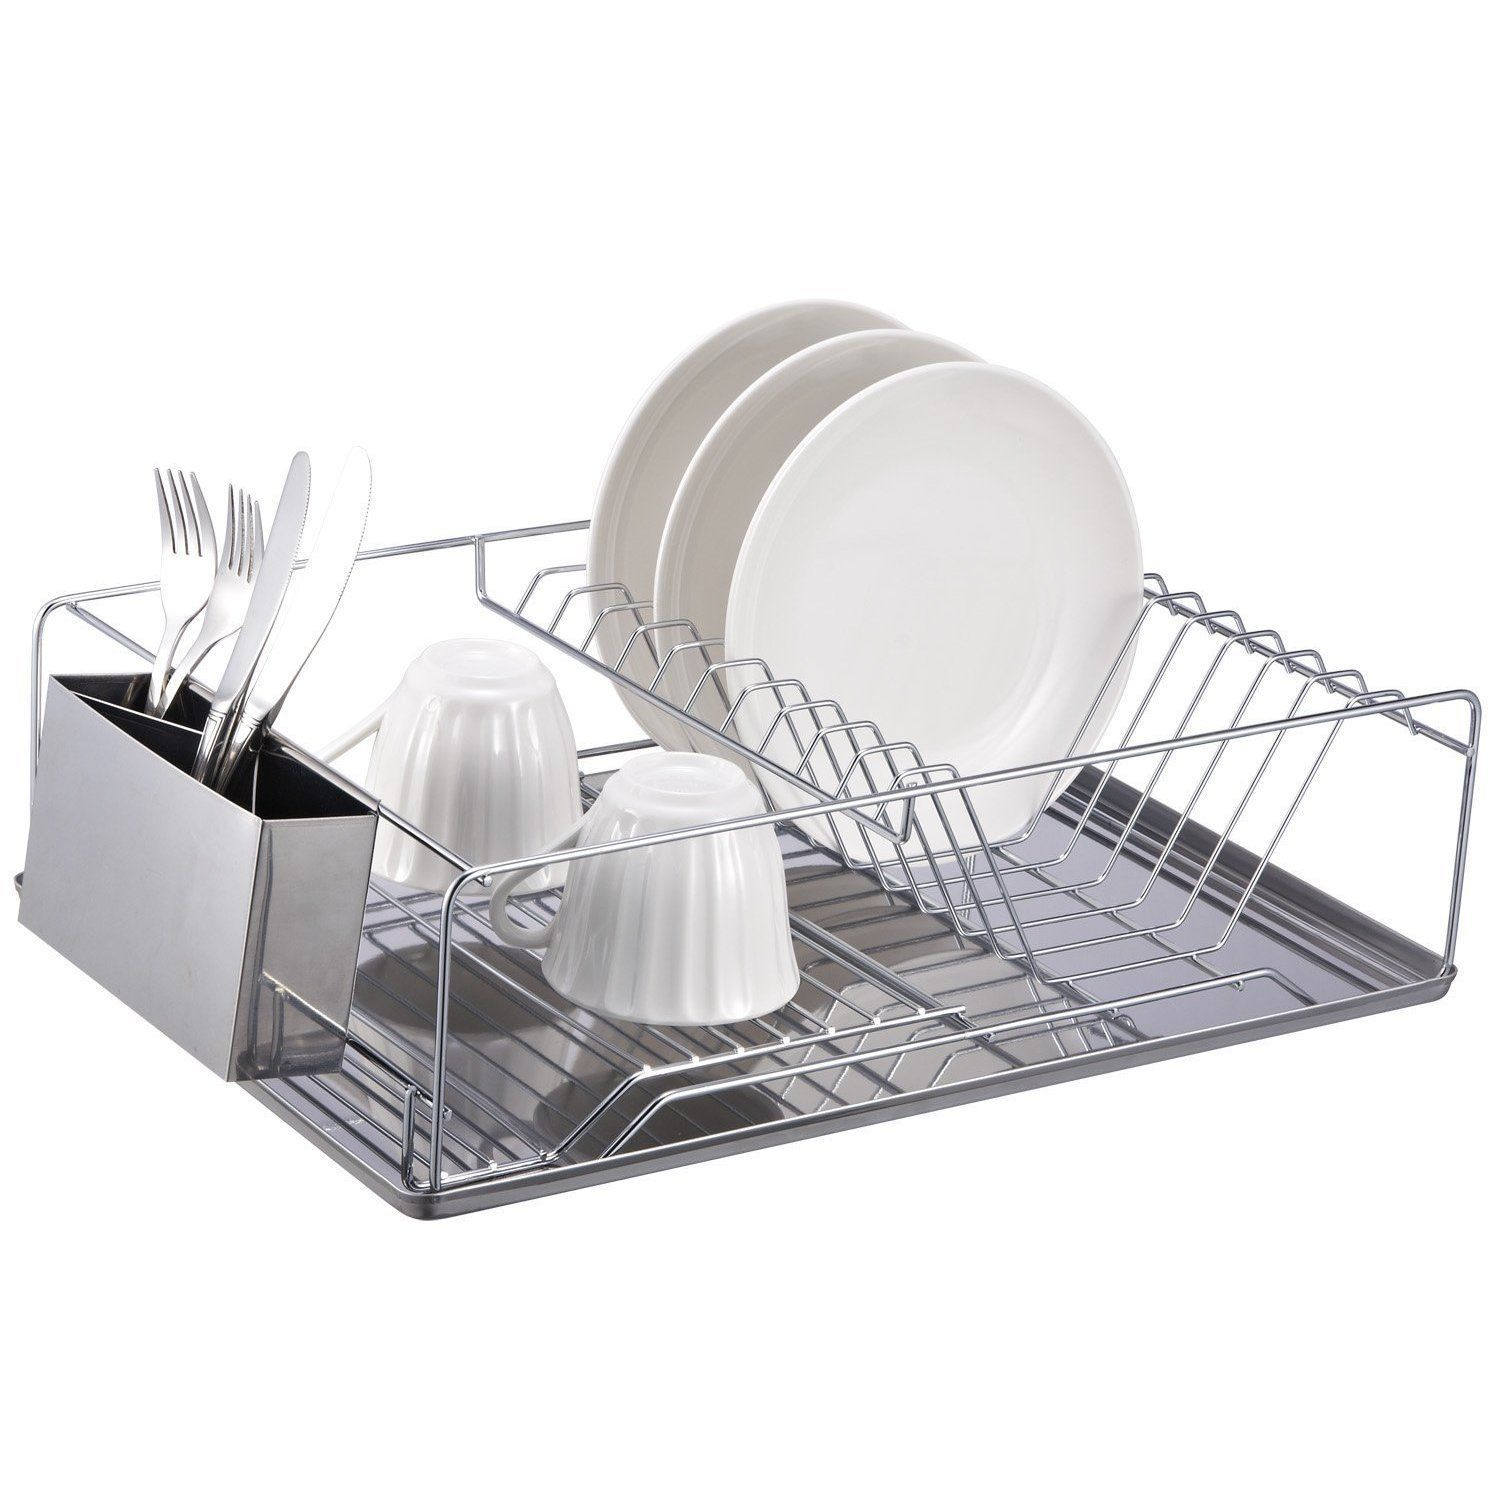 Home Basics 2 Tier Dish Rack Inspiration This 3Piece Stainless Steel Dish Rack Provides Extra Space For Decorating Inspiration